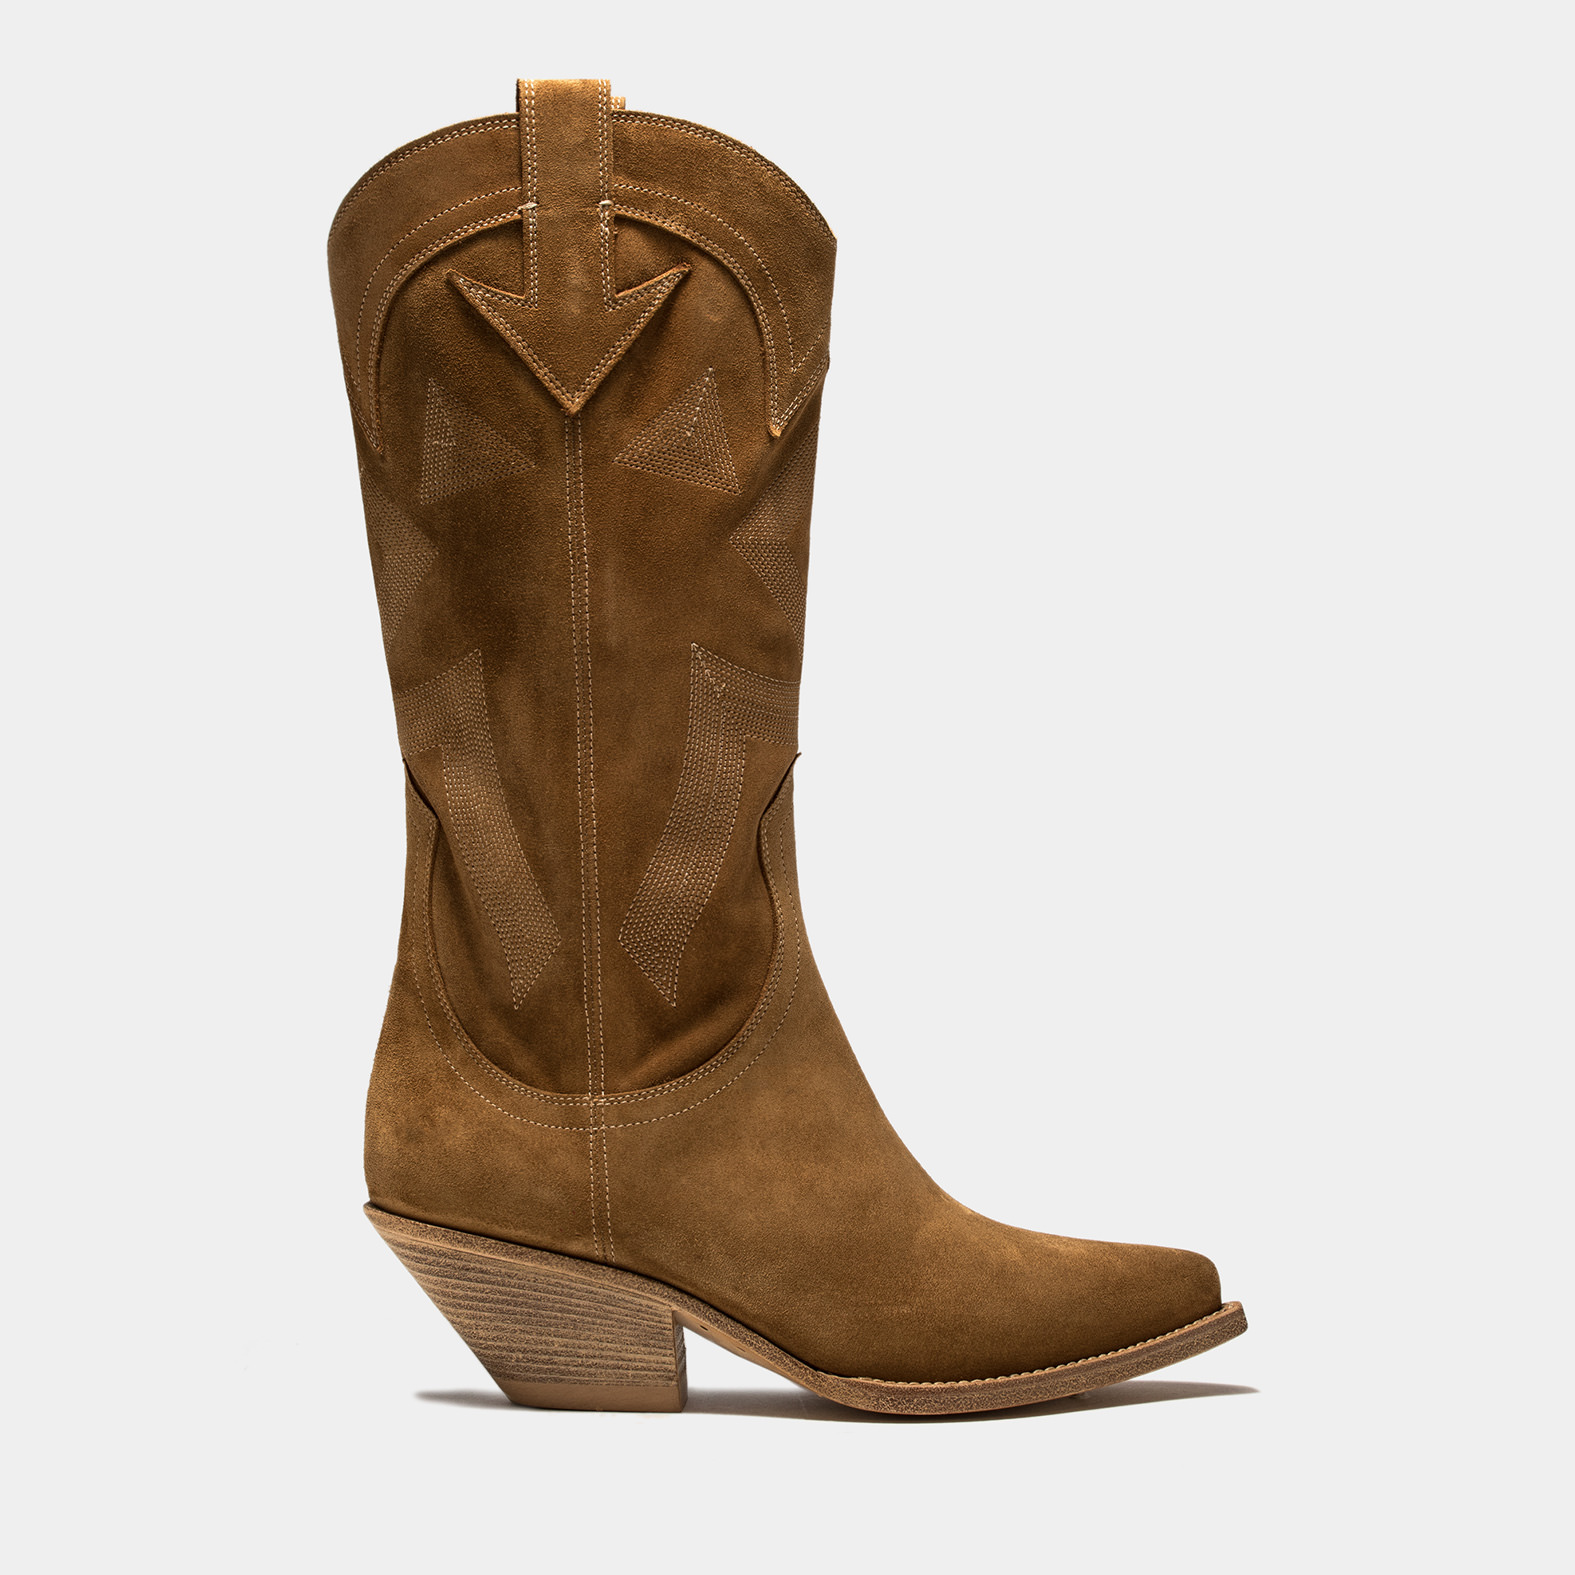 BUTTERO: ELISE HIGH HEEL DURANGO BOOTS IN COPPER BROWN SUEDE